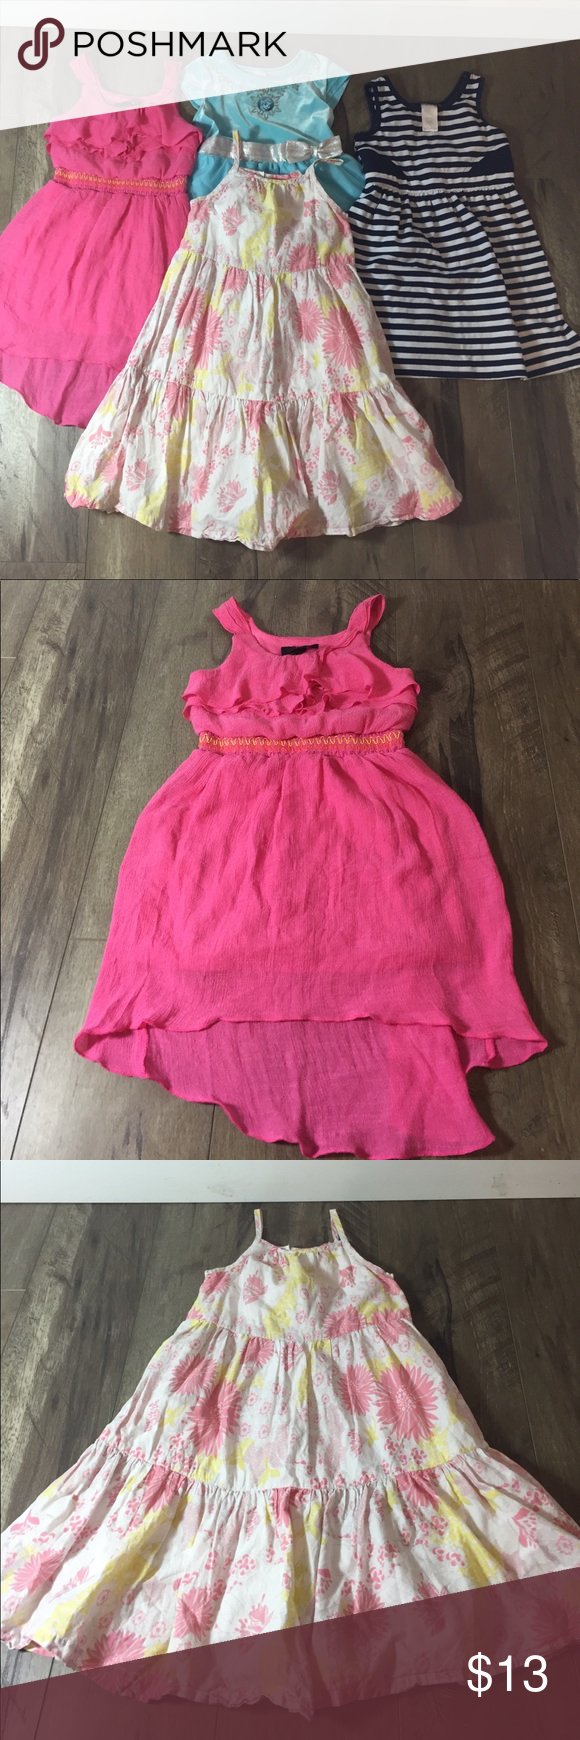 4 Dresses size 5t Old Navy, iZ byer, Disney, Dis.. Here are 4 Used dresses in good condition. Perfect for summer. They are all size 5. Included in this Lot is a pink iz byer dress, white and blue striped Disorderly Kuds dress, blue and silver Disney Elsa dress, and a spaghetti strap Old Navy dress. Dresses Casual